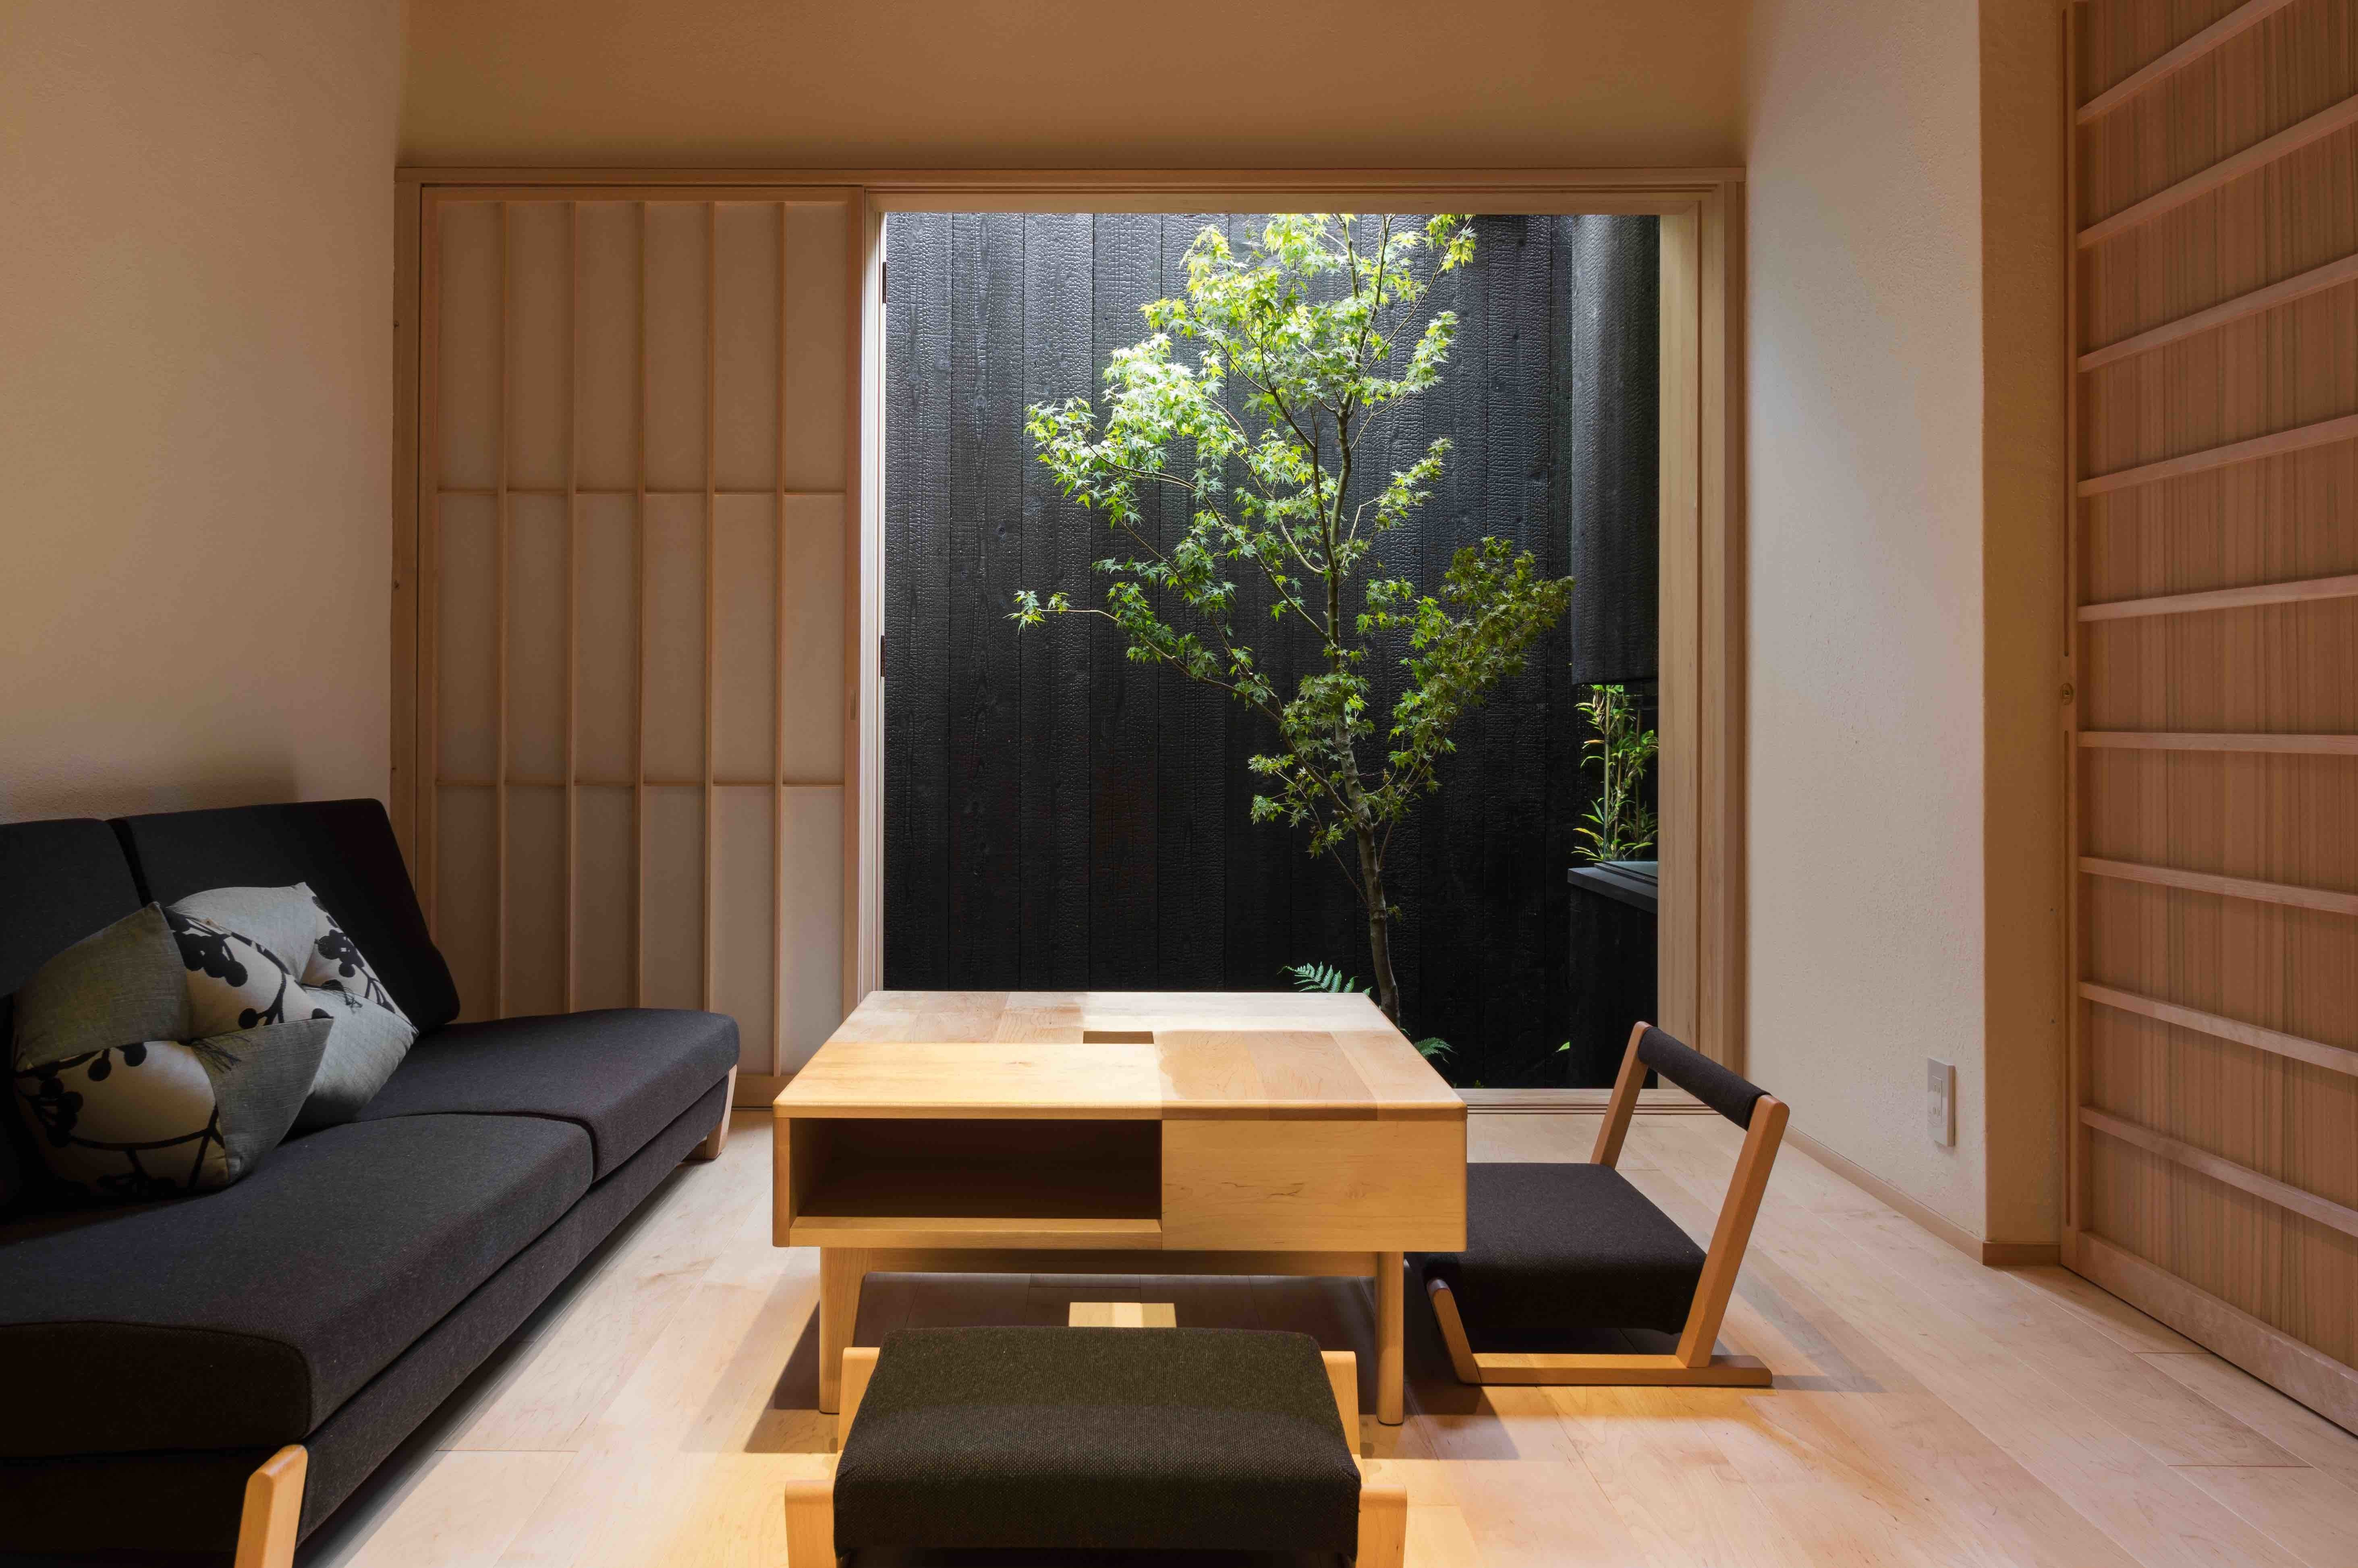 Photo 5 of 16 in Stay in a Historic Japanese Townhouse in Kyoto That